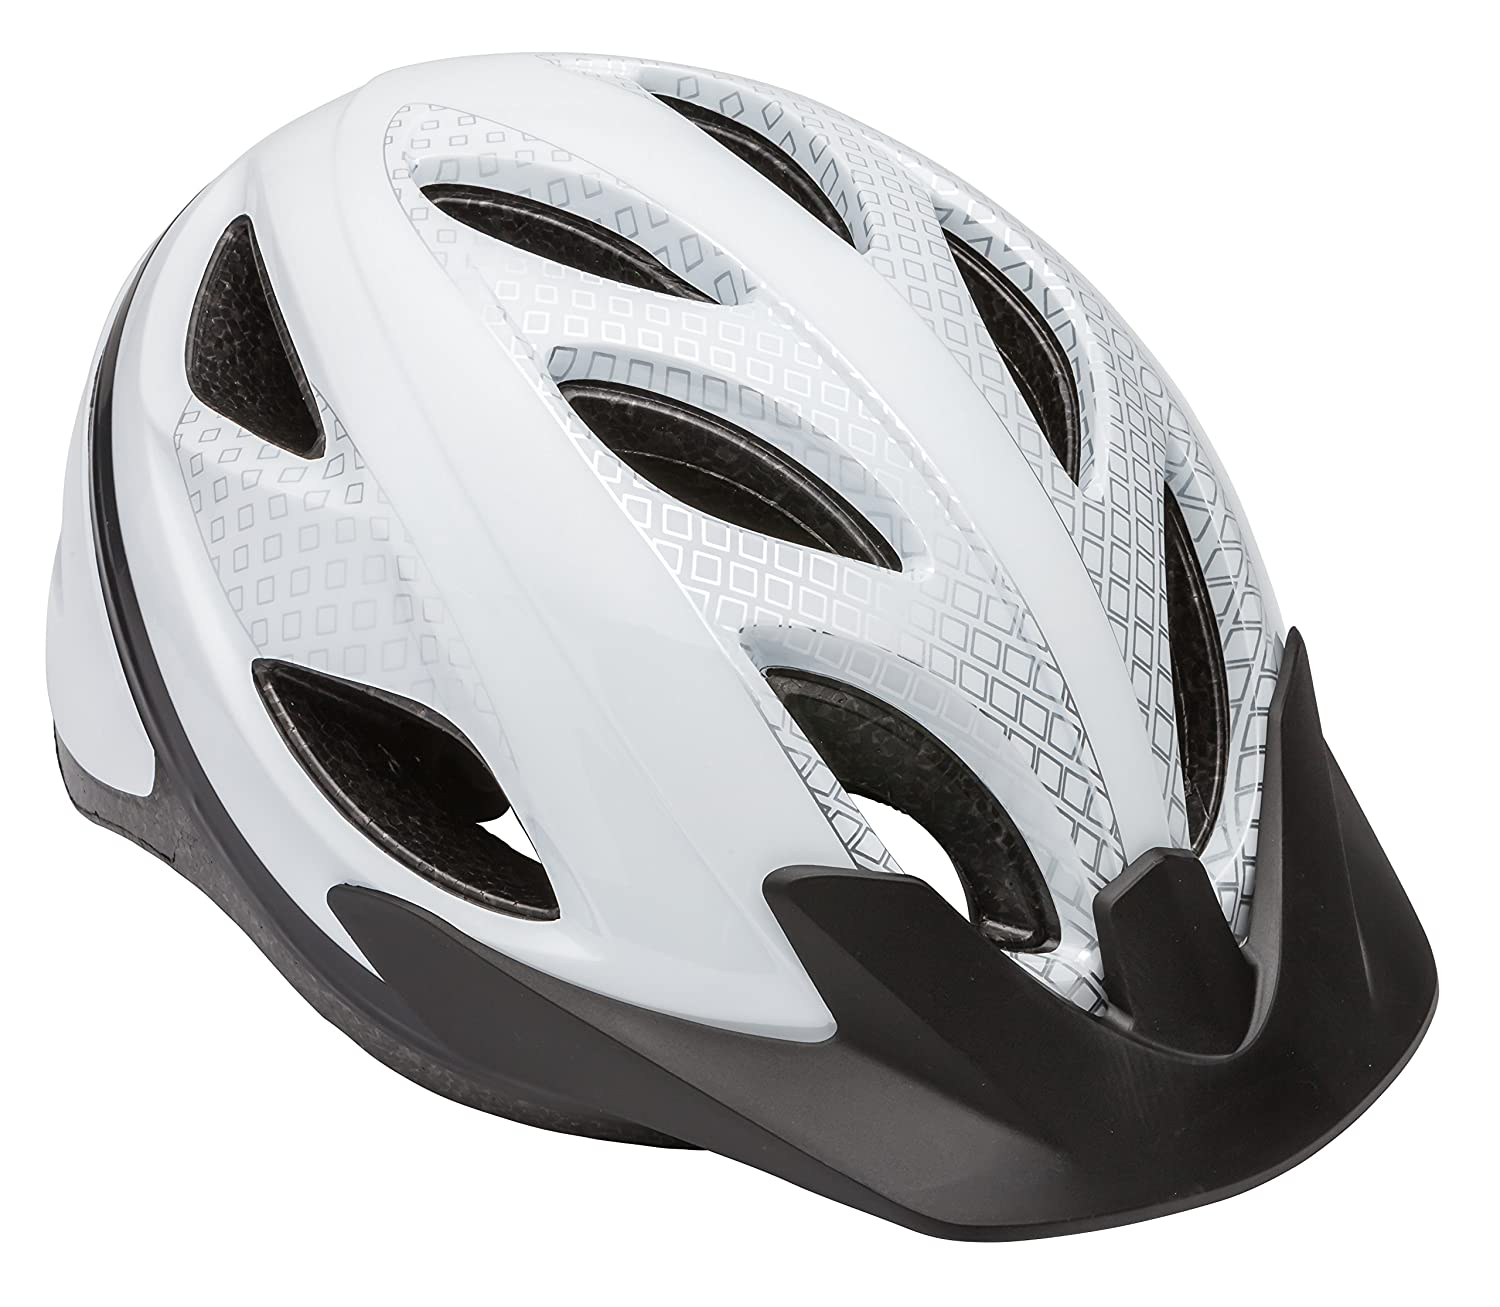 Amazon.com : Schwinn SW78371-2 Womens Pathway Adult Helmet, Black : Sports & Outdoors